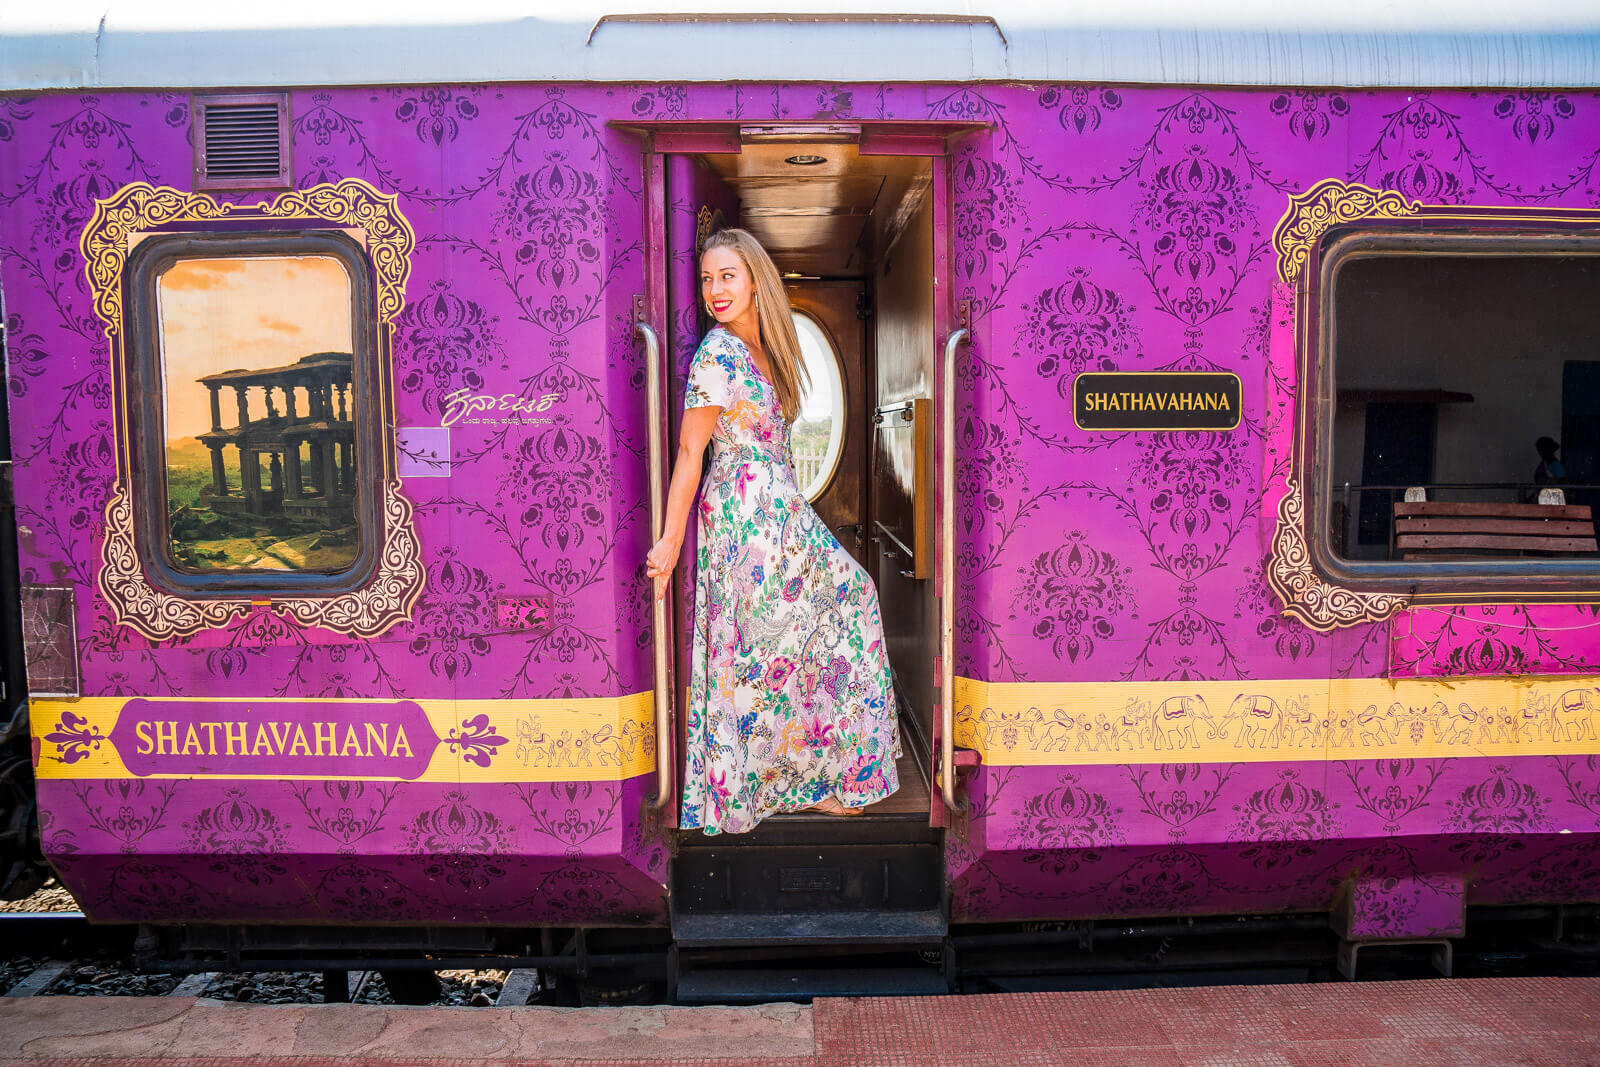 Travel and Keep Fit at the Golden Chariot, one of the Luxury Trains of India